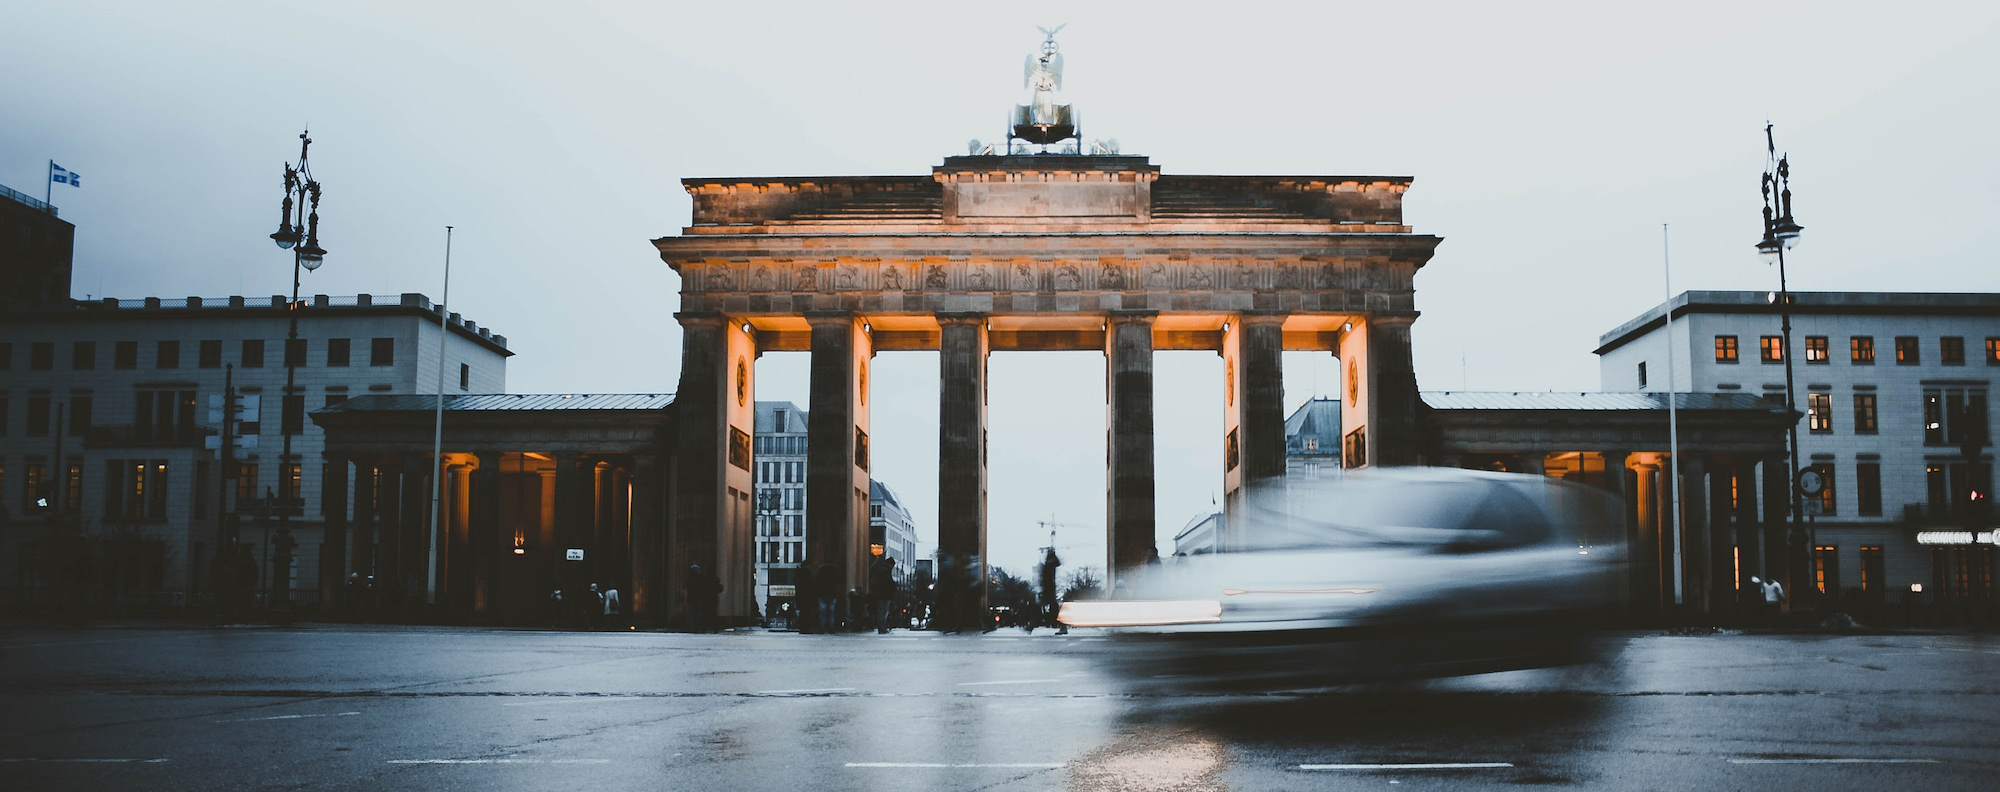 berlin_brandenburger-tor